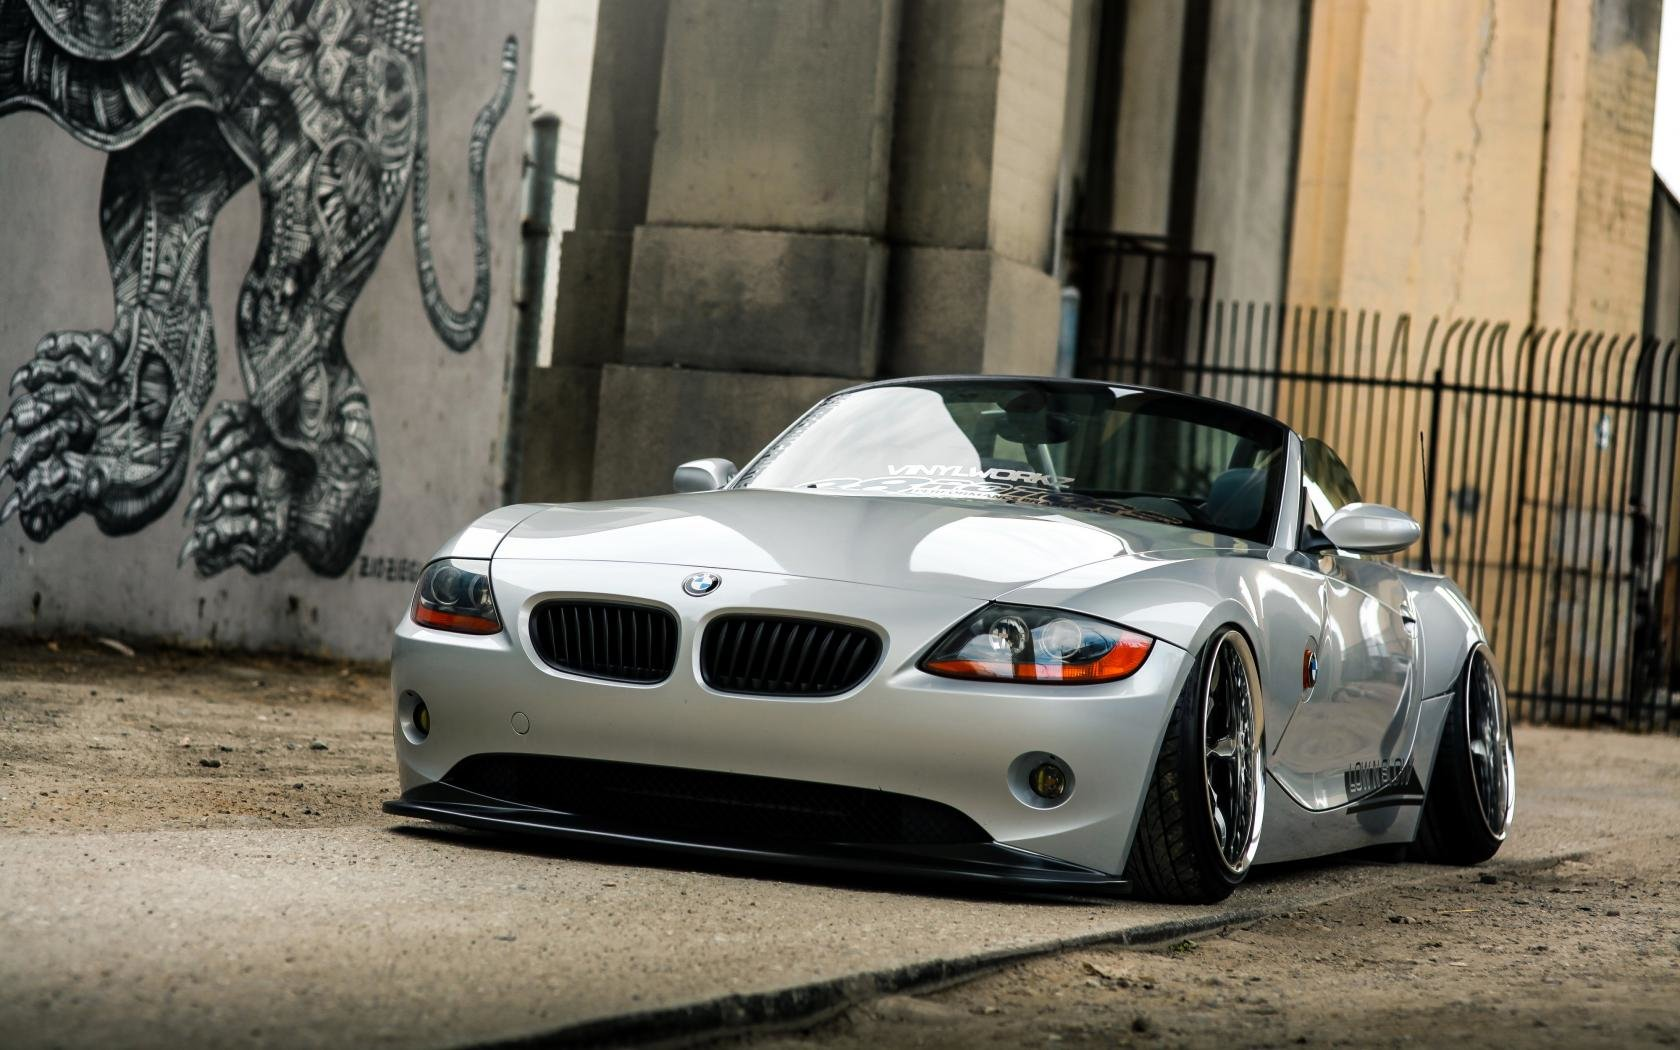 Awesome Bmw Z4 Free Wallpaper Id466938 For Hd 1680x1050 Pc